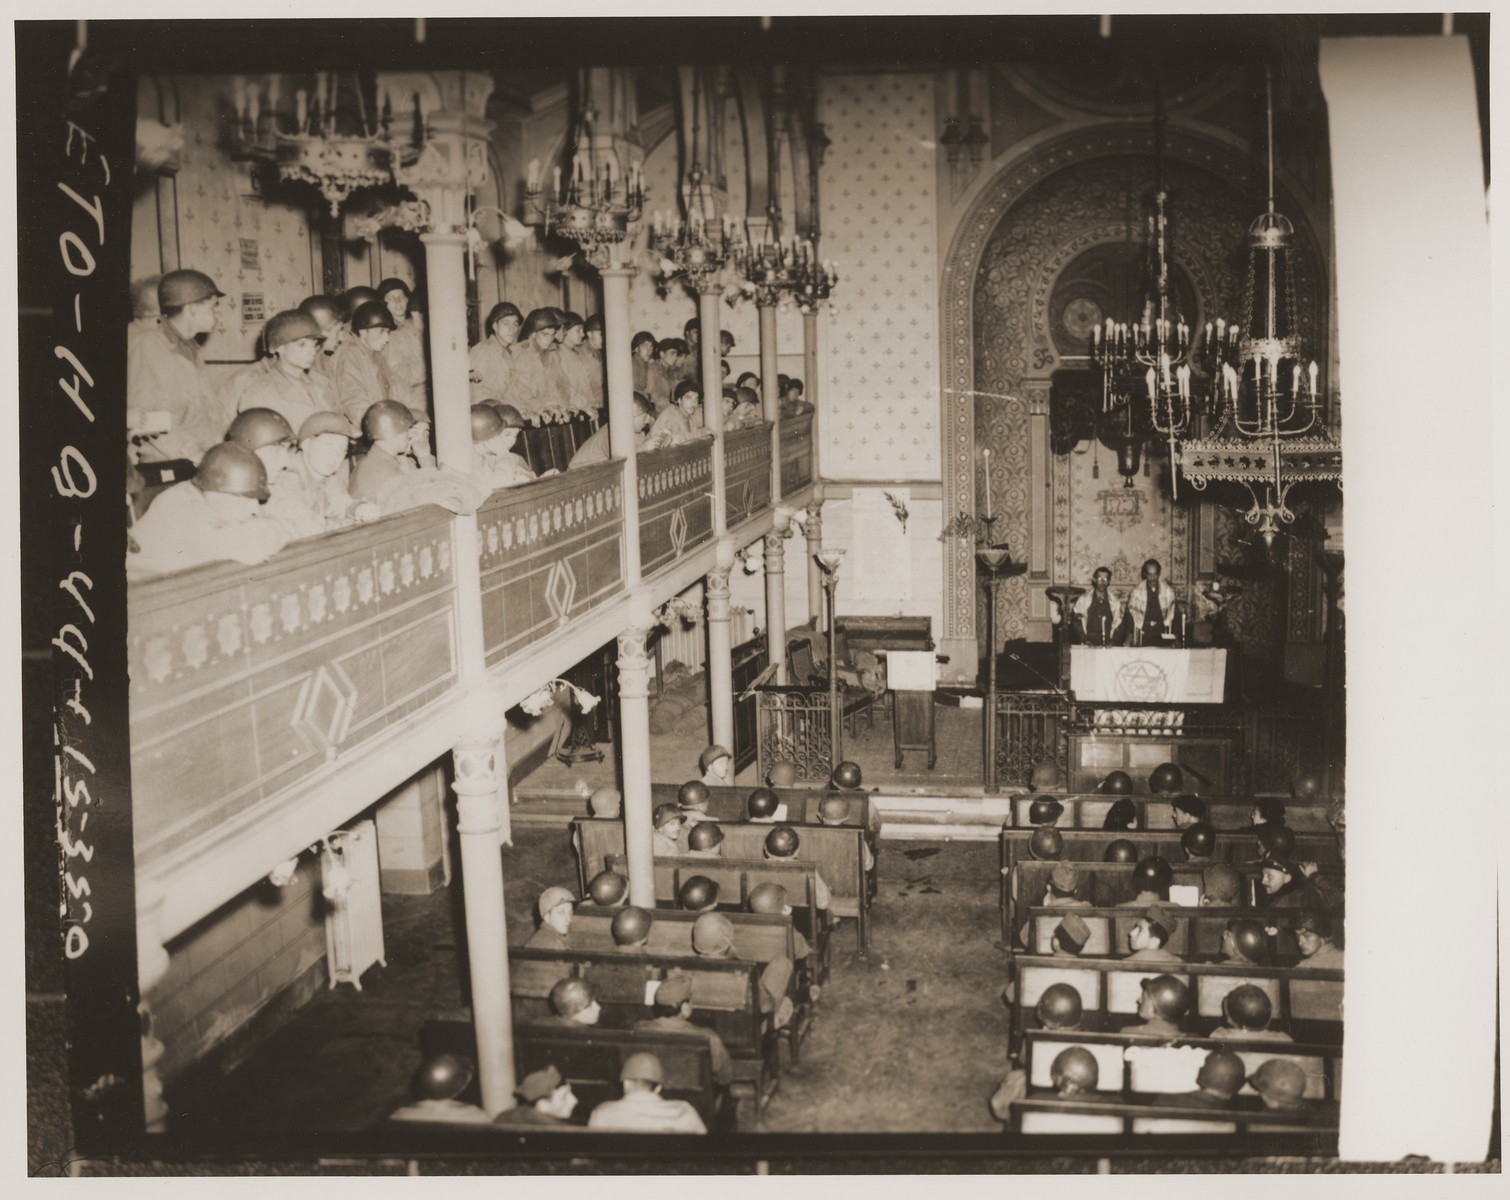 American-Jewish servicemen worship at a Rosh Hashanah service at the synagogue in Rheims.